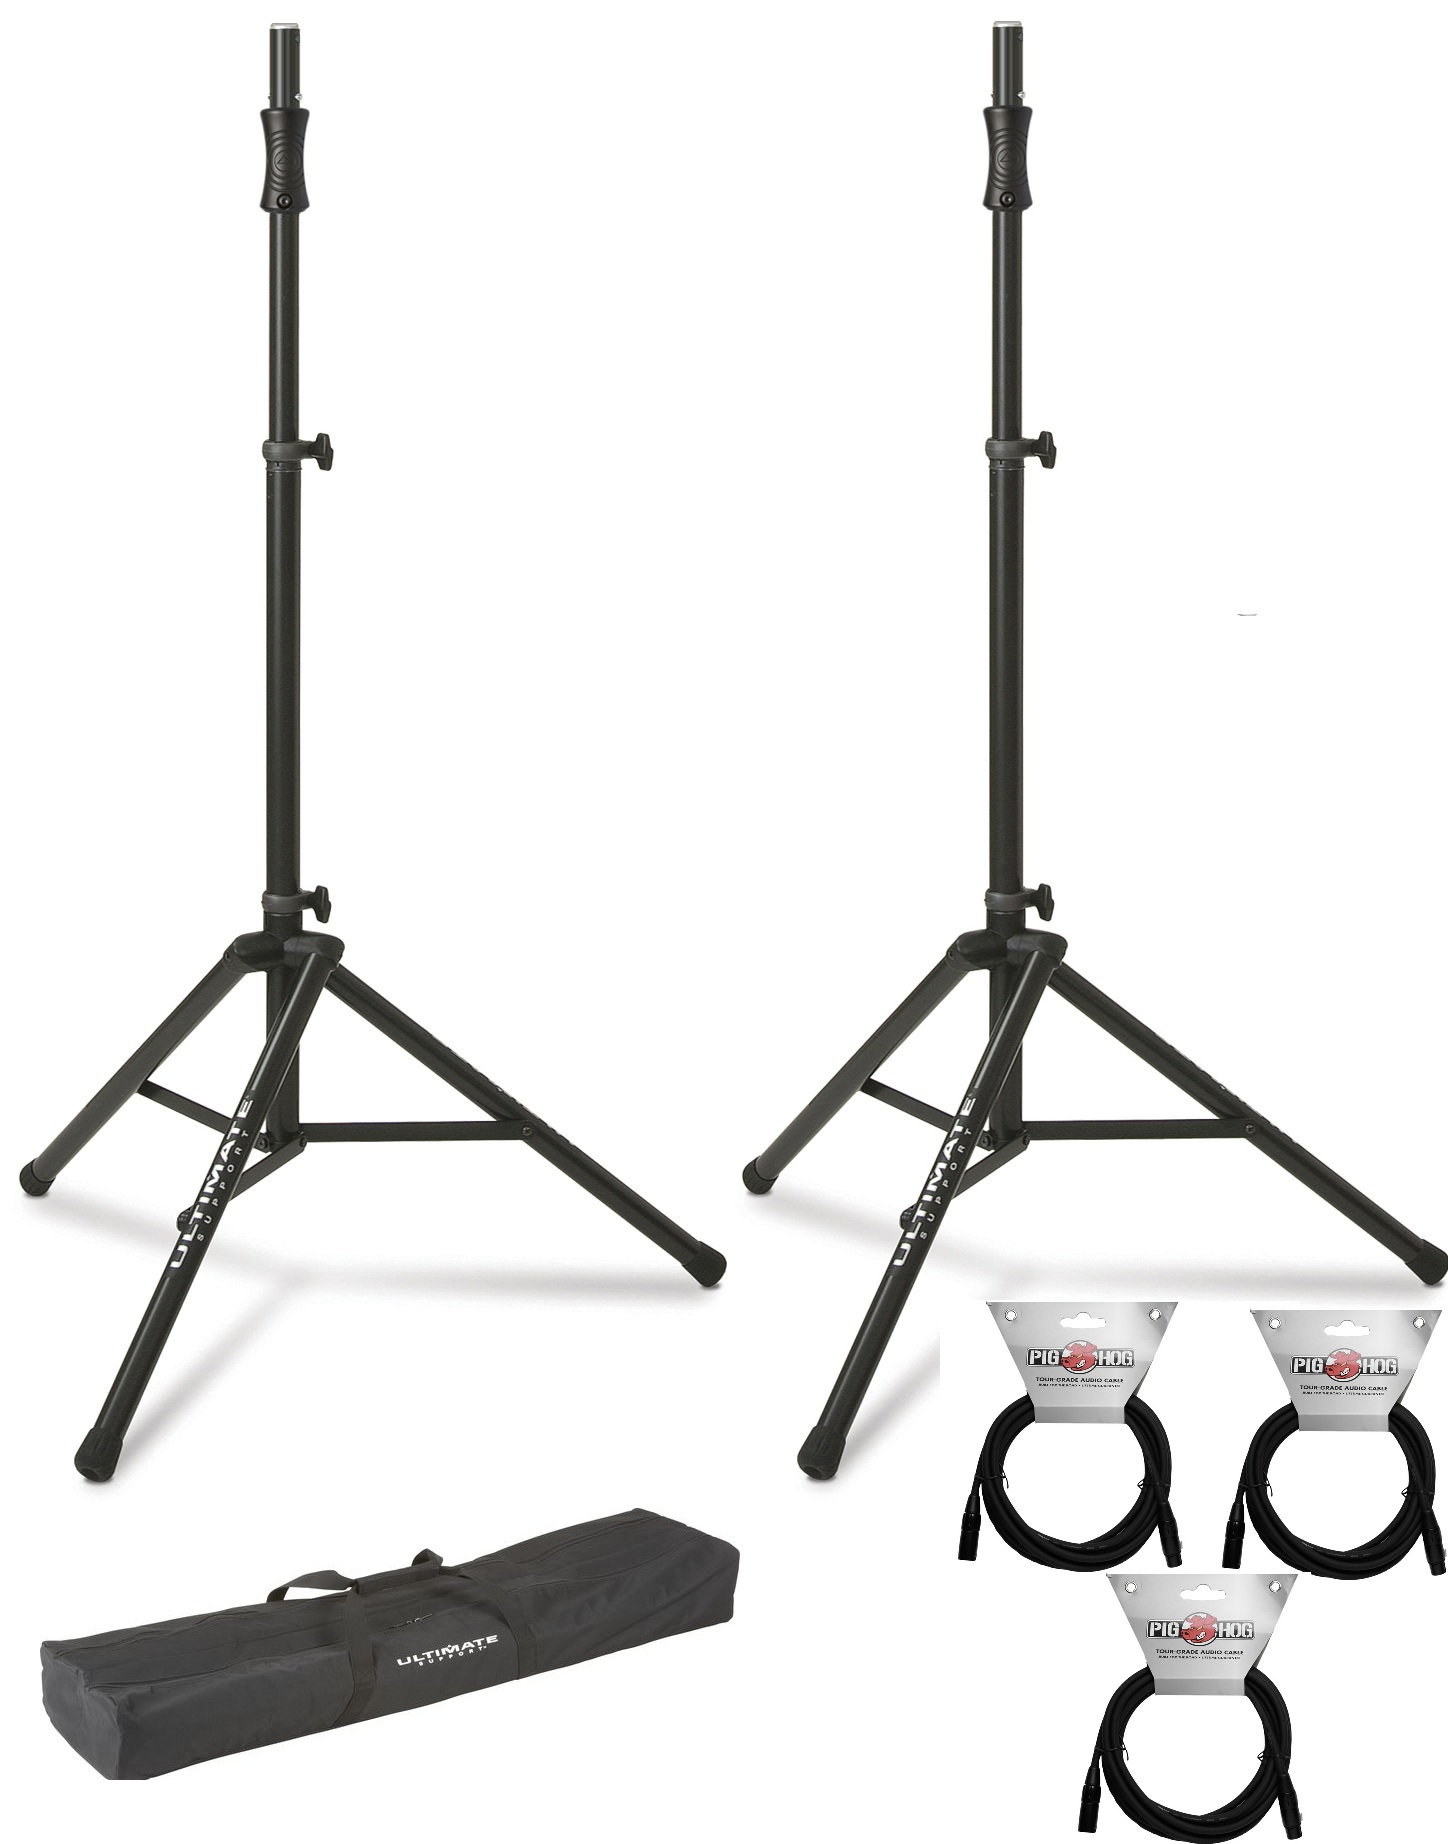 2x-ultimate-support-ts-100b-w--bag-and-cables.jpg